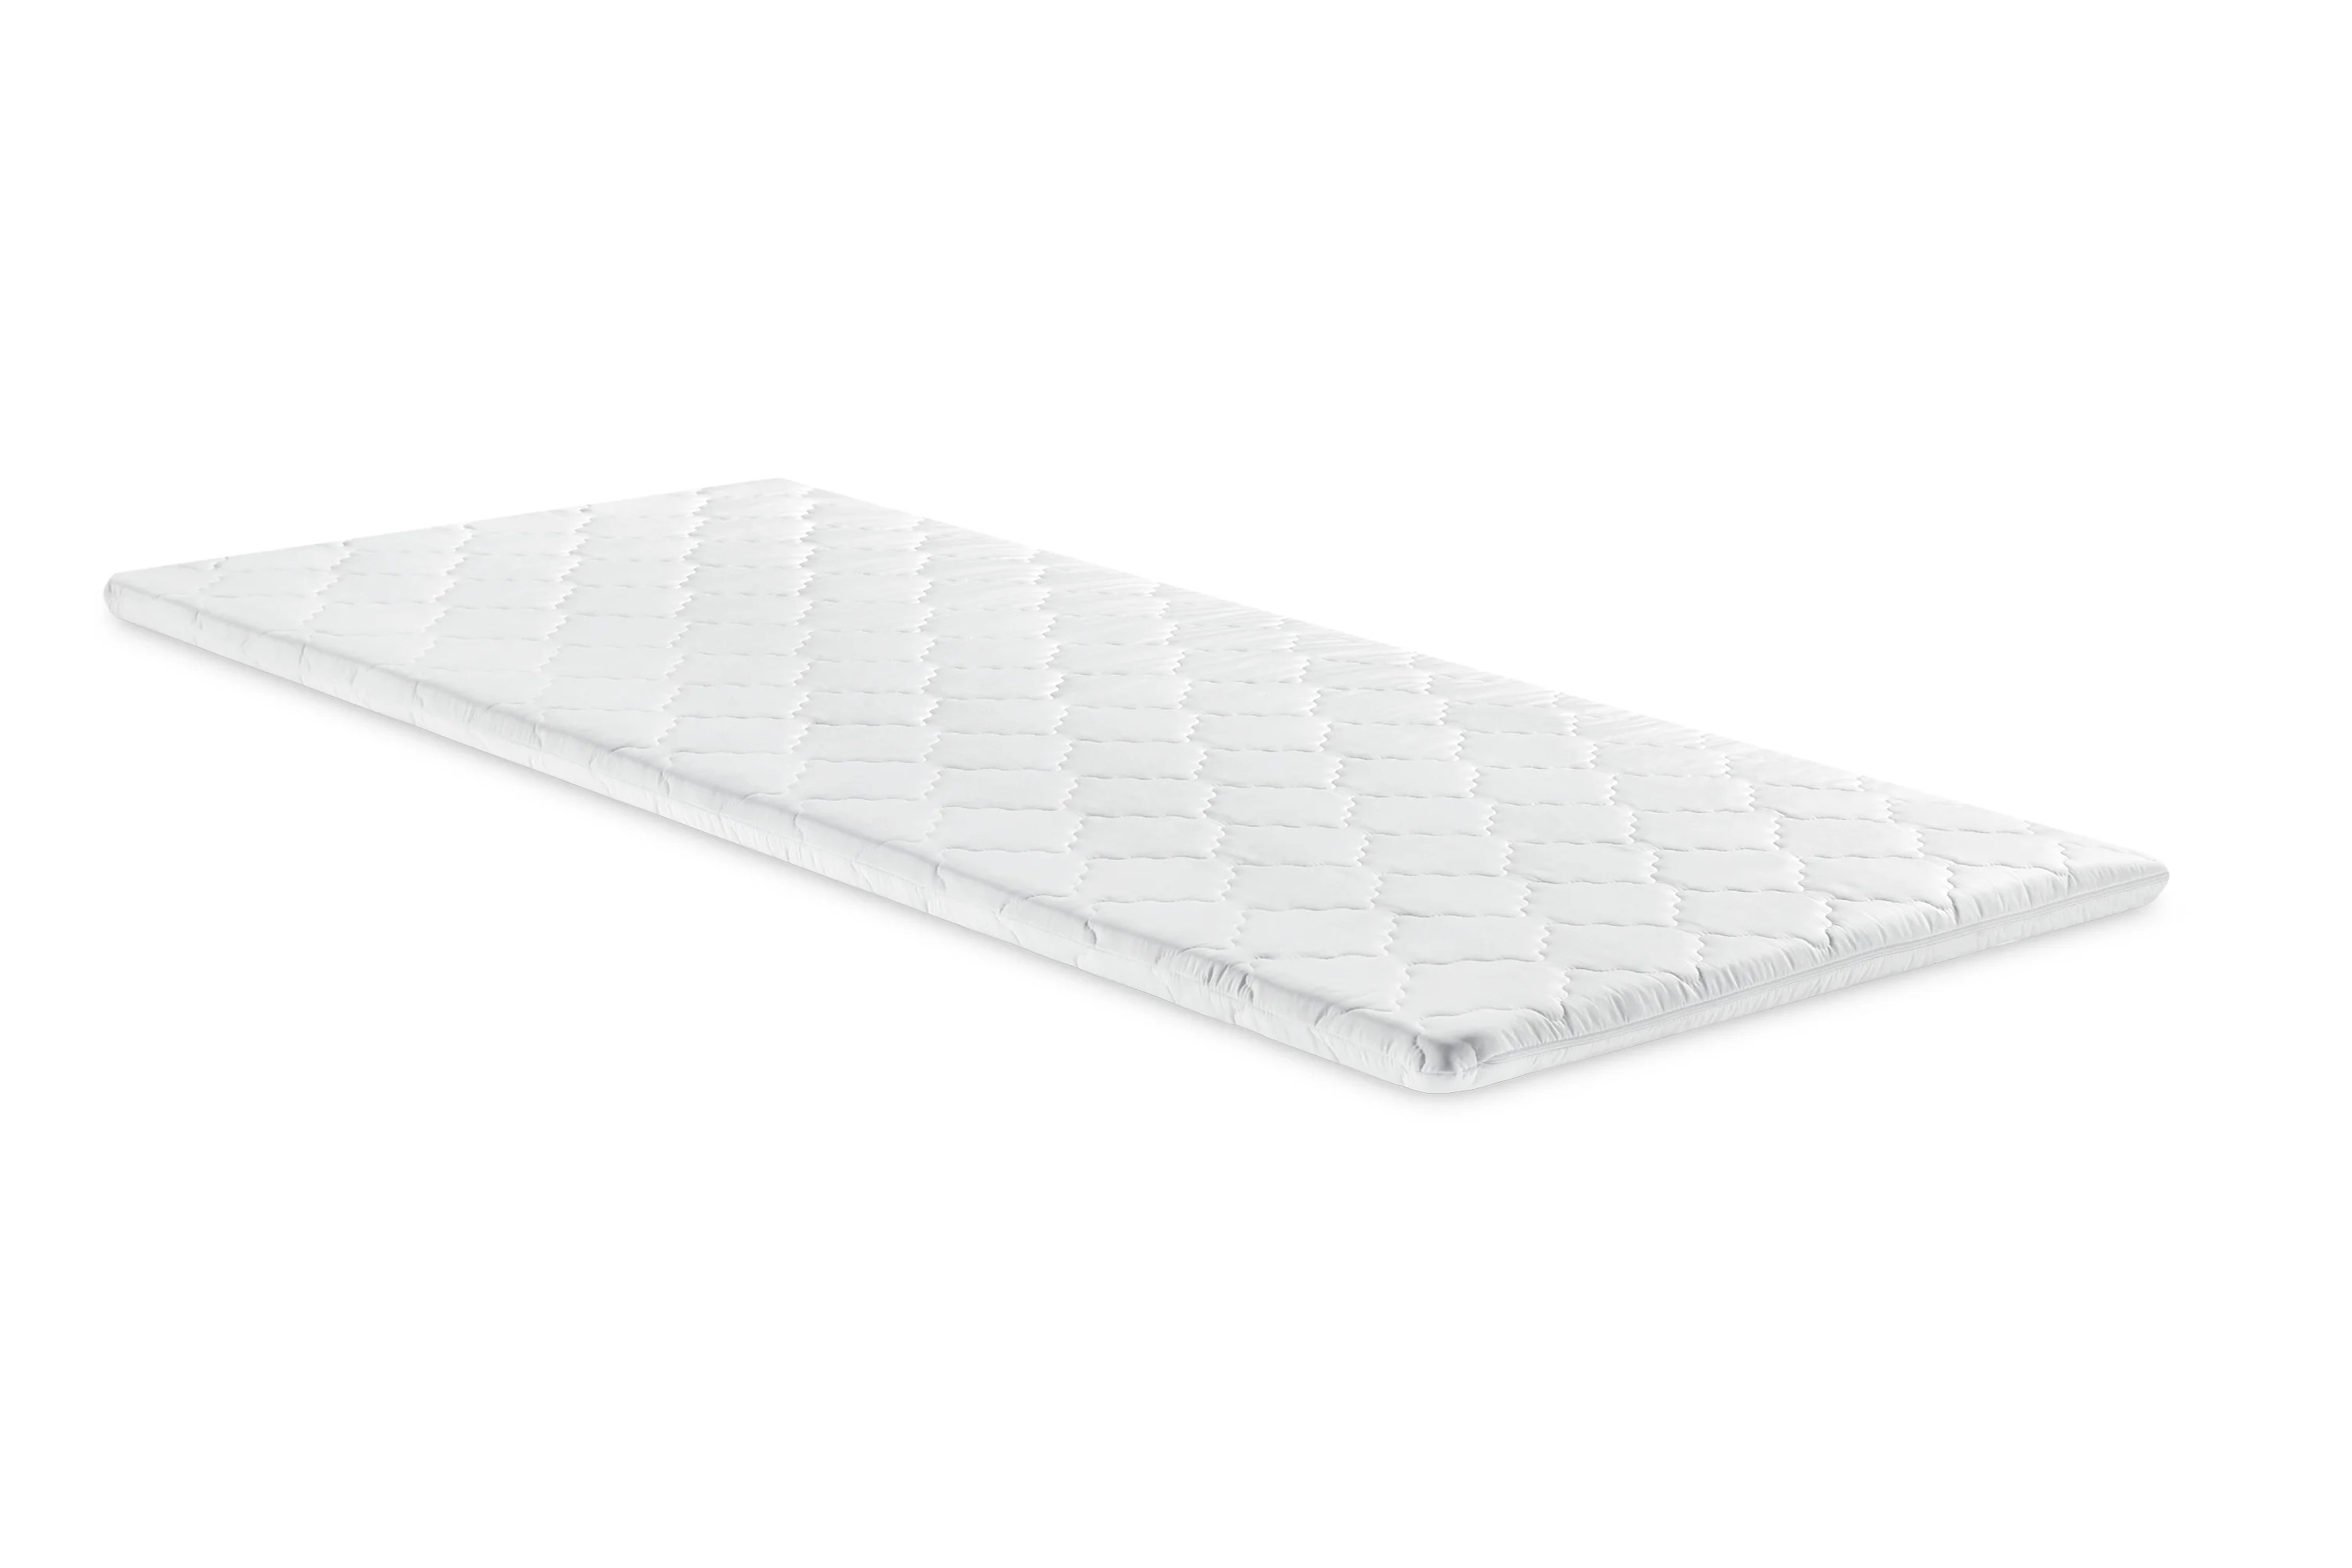 Kaltschaum Topper 140x200 Wayfair Sleep 6 Cm Matratzenauflage Wayfair Sleep & Bewertungen | Wayfair.de